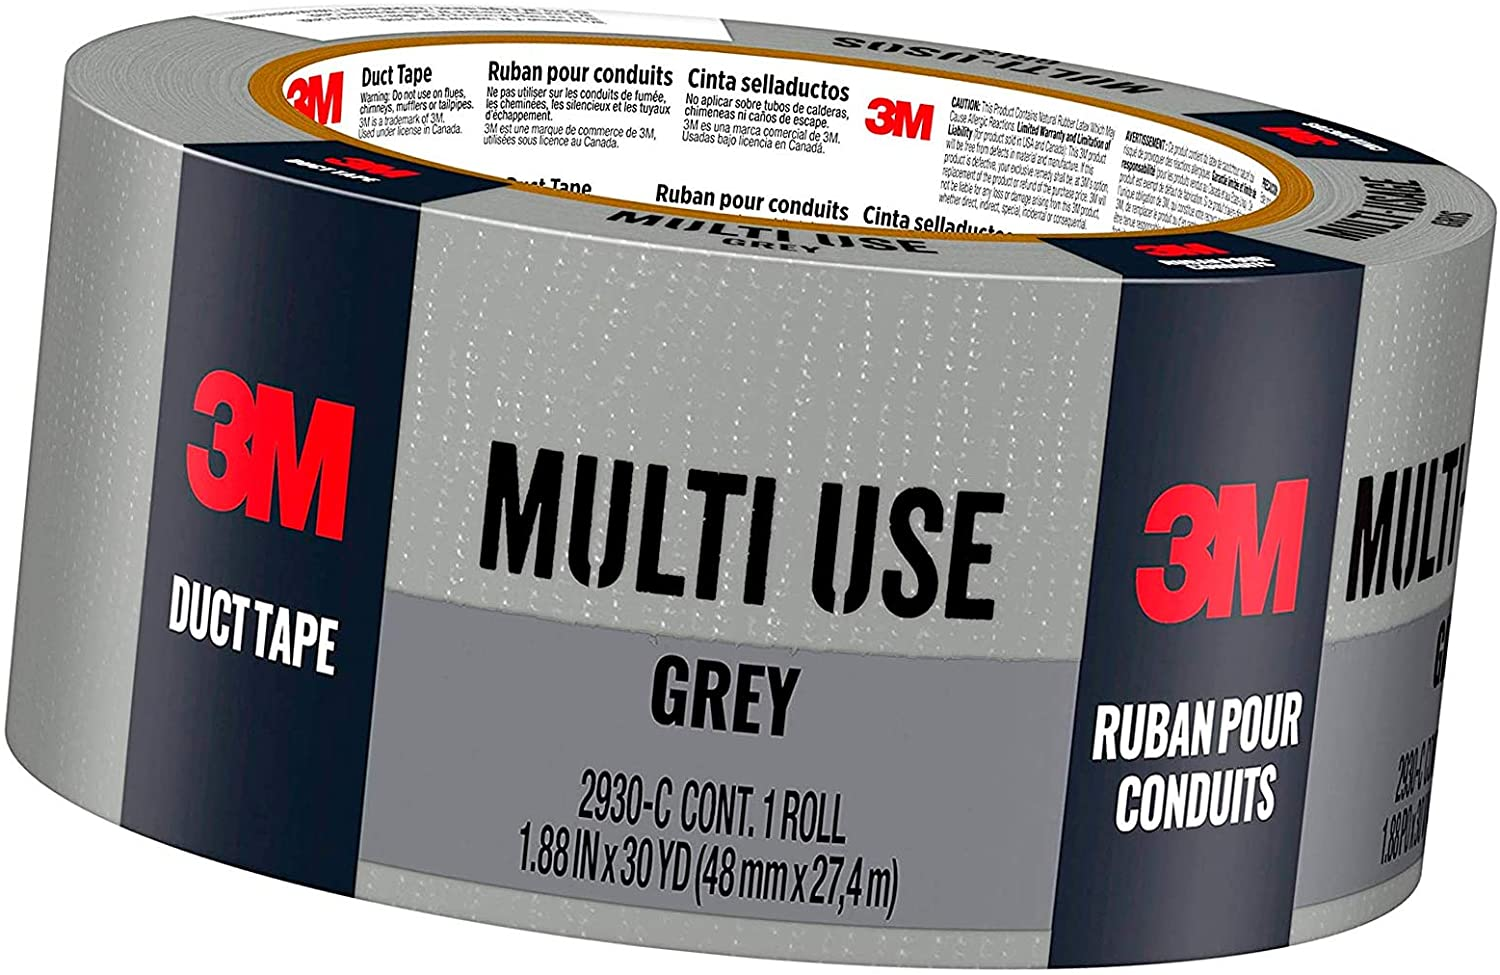 3M Multi-Use Duct Tape for Home & Shop, 1.88 inches x 30 Yards, 2930-C, 1 roll